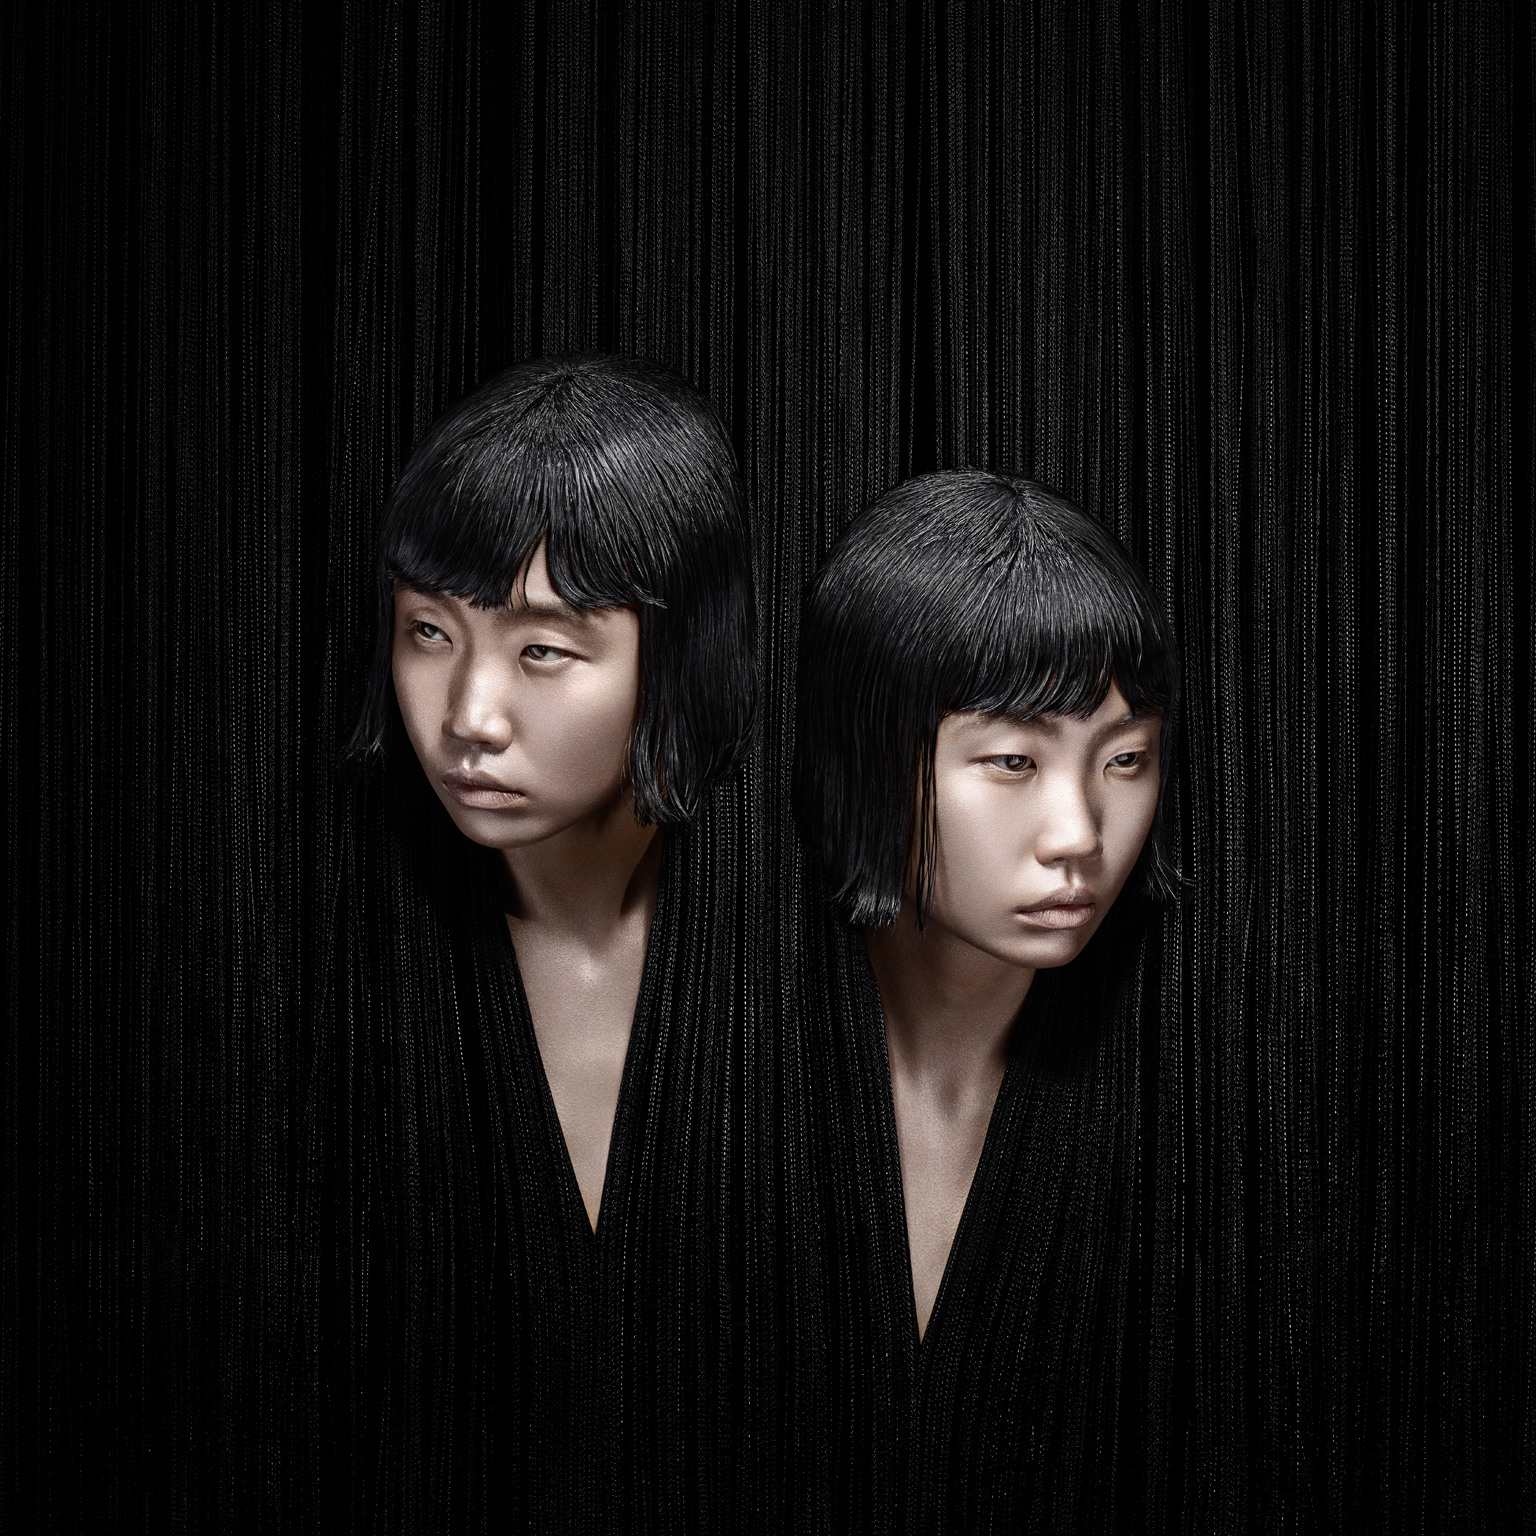 That night: Fluid fringing is a key element of Chalayan's A/W 15 collection, encapsulating mystery and strangeness in a non-linear homage to Agatha Christie's Murder on the Orient Express